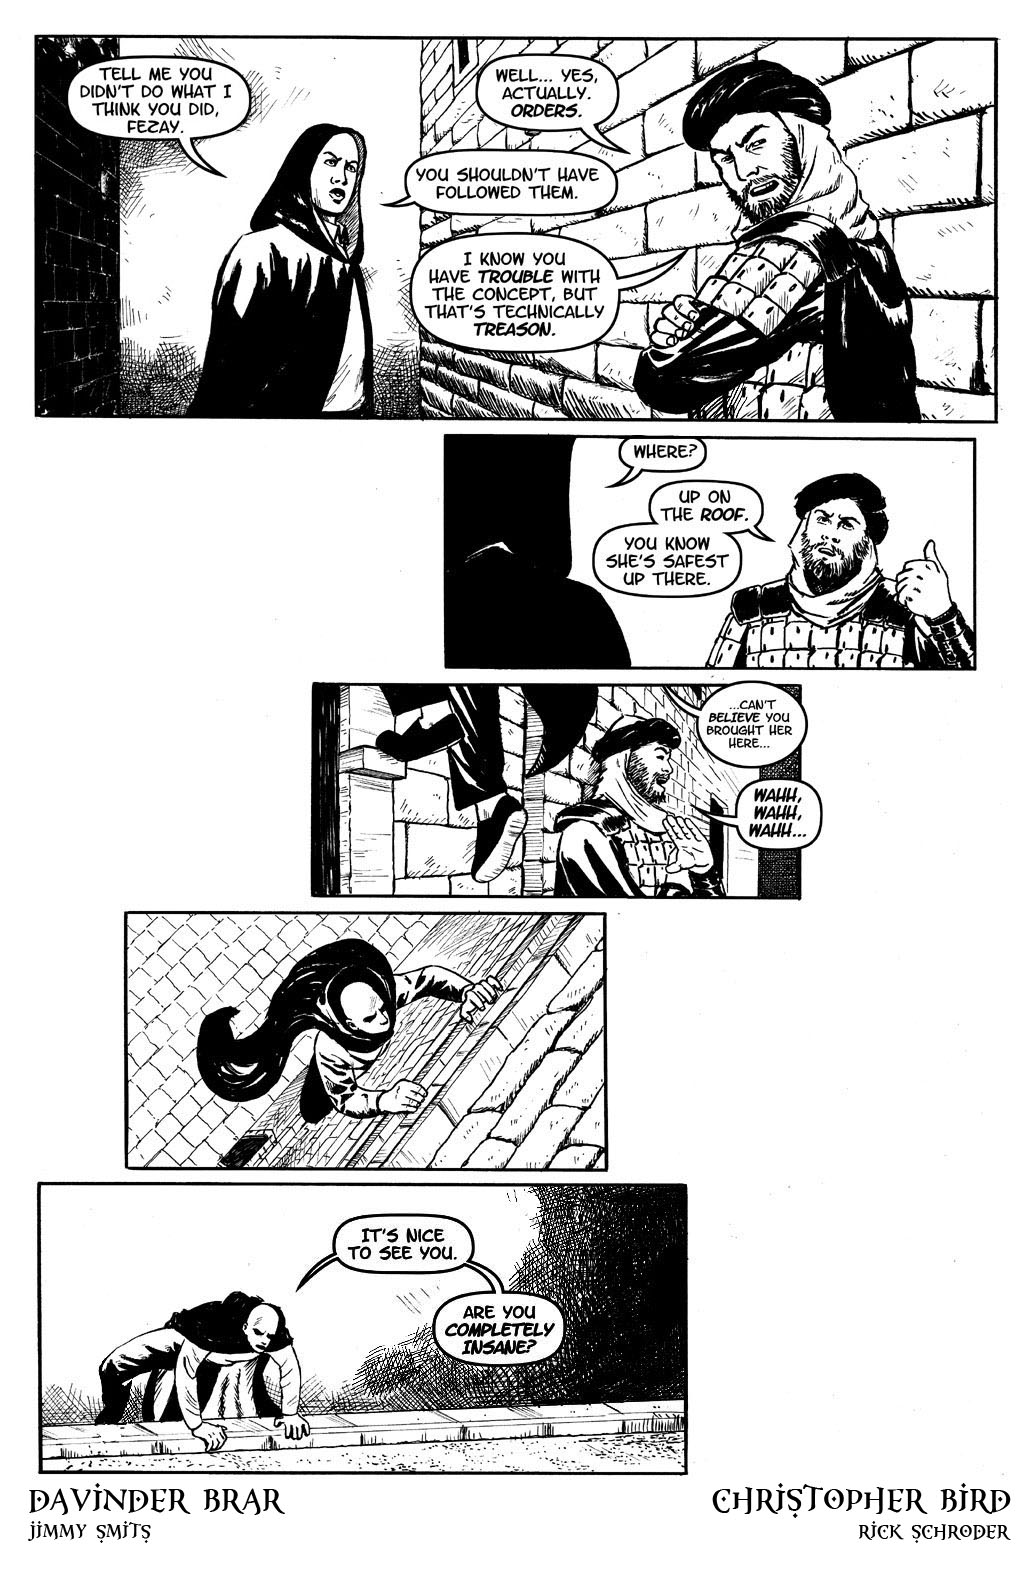 Book 4, page 4